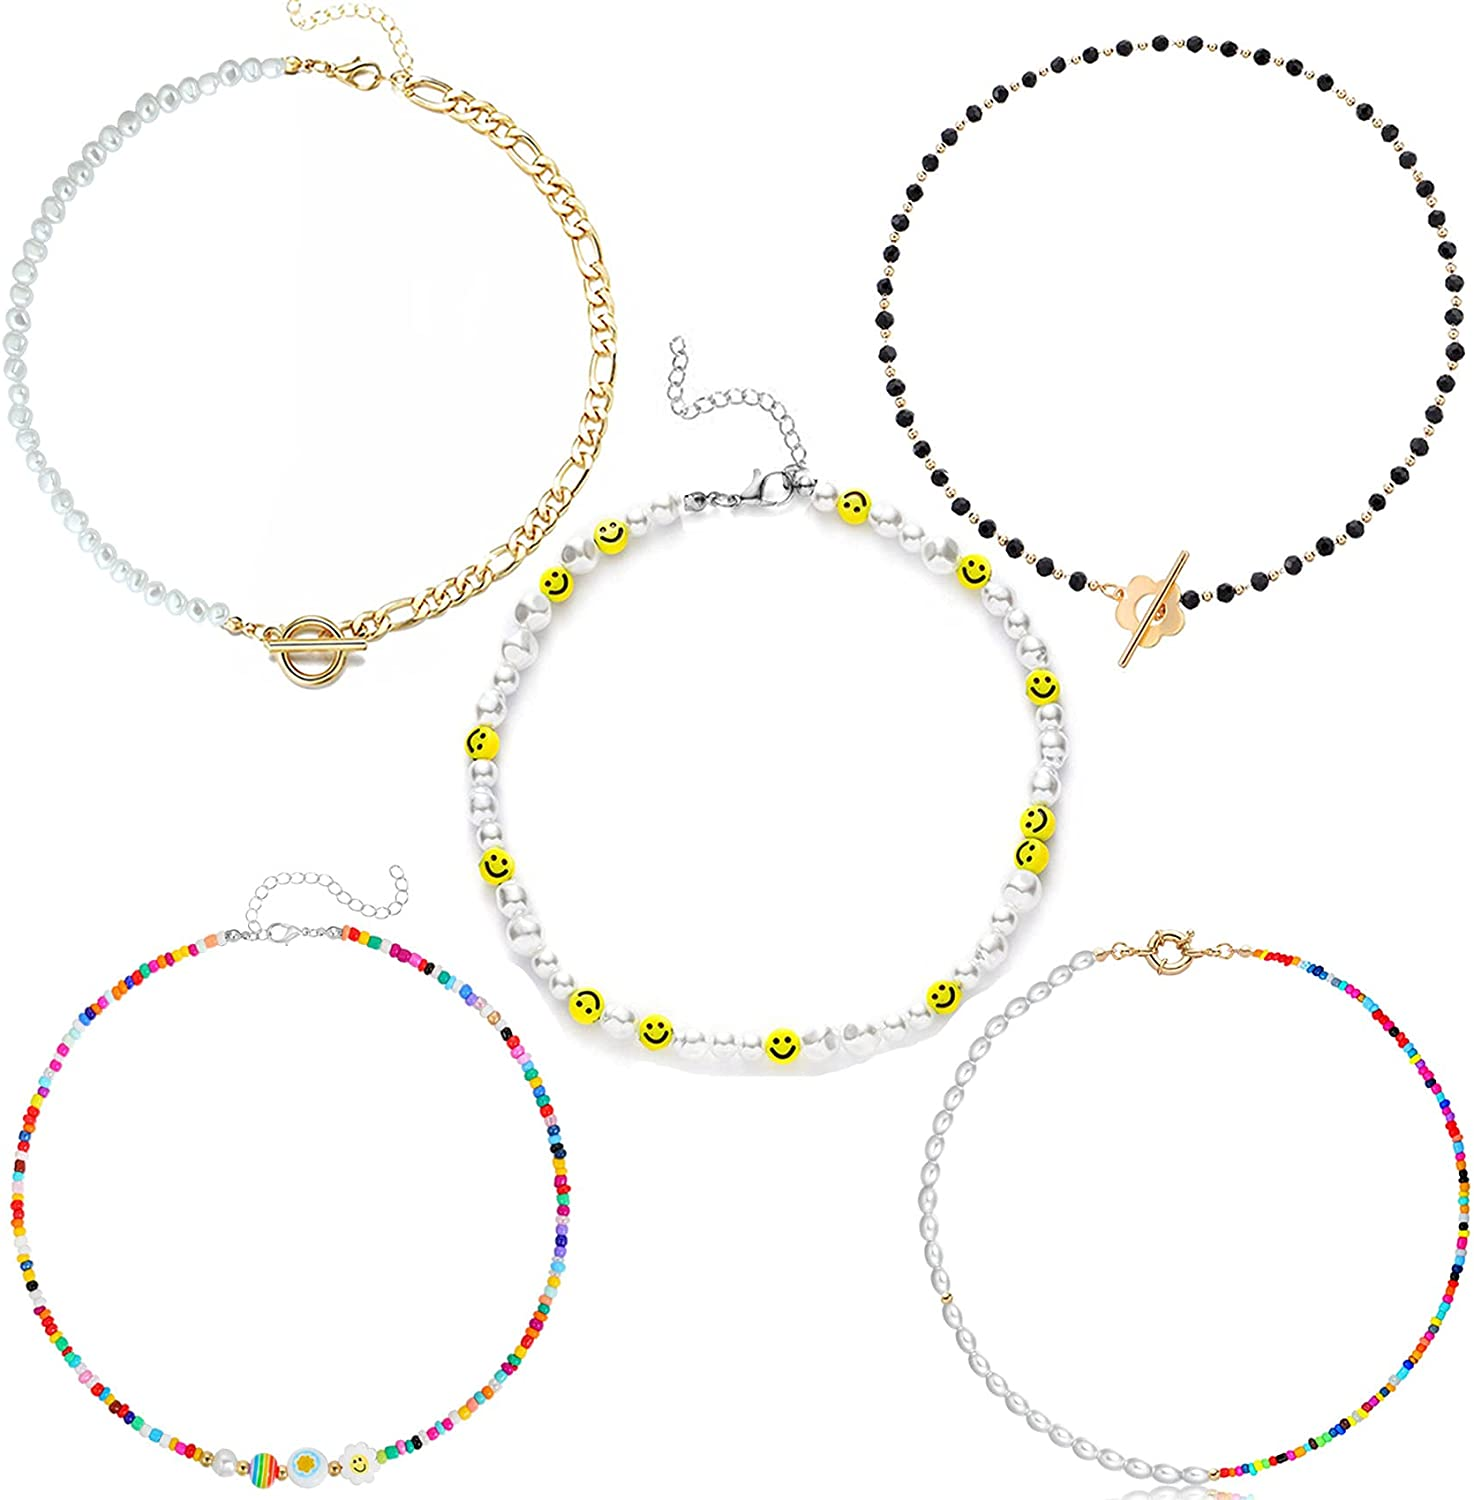 Honsny 2-5 PCS Boho Pearl Beaded Necklace Set Y2k Pearl Chain Choker Necklace for Women Girls Smiley Face Fruit Charms Chokers Colorful Seed Flower Beaded Choker Pearl Bead Necklace for Teen Girls